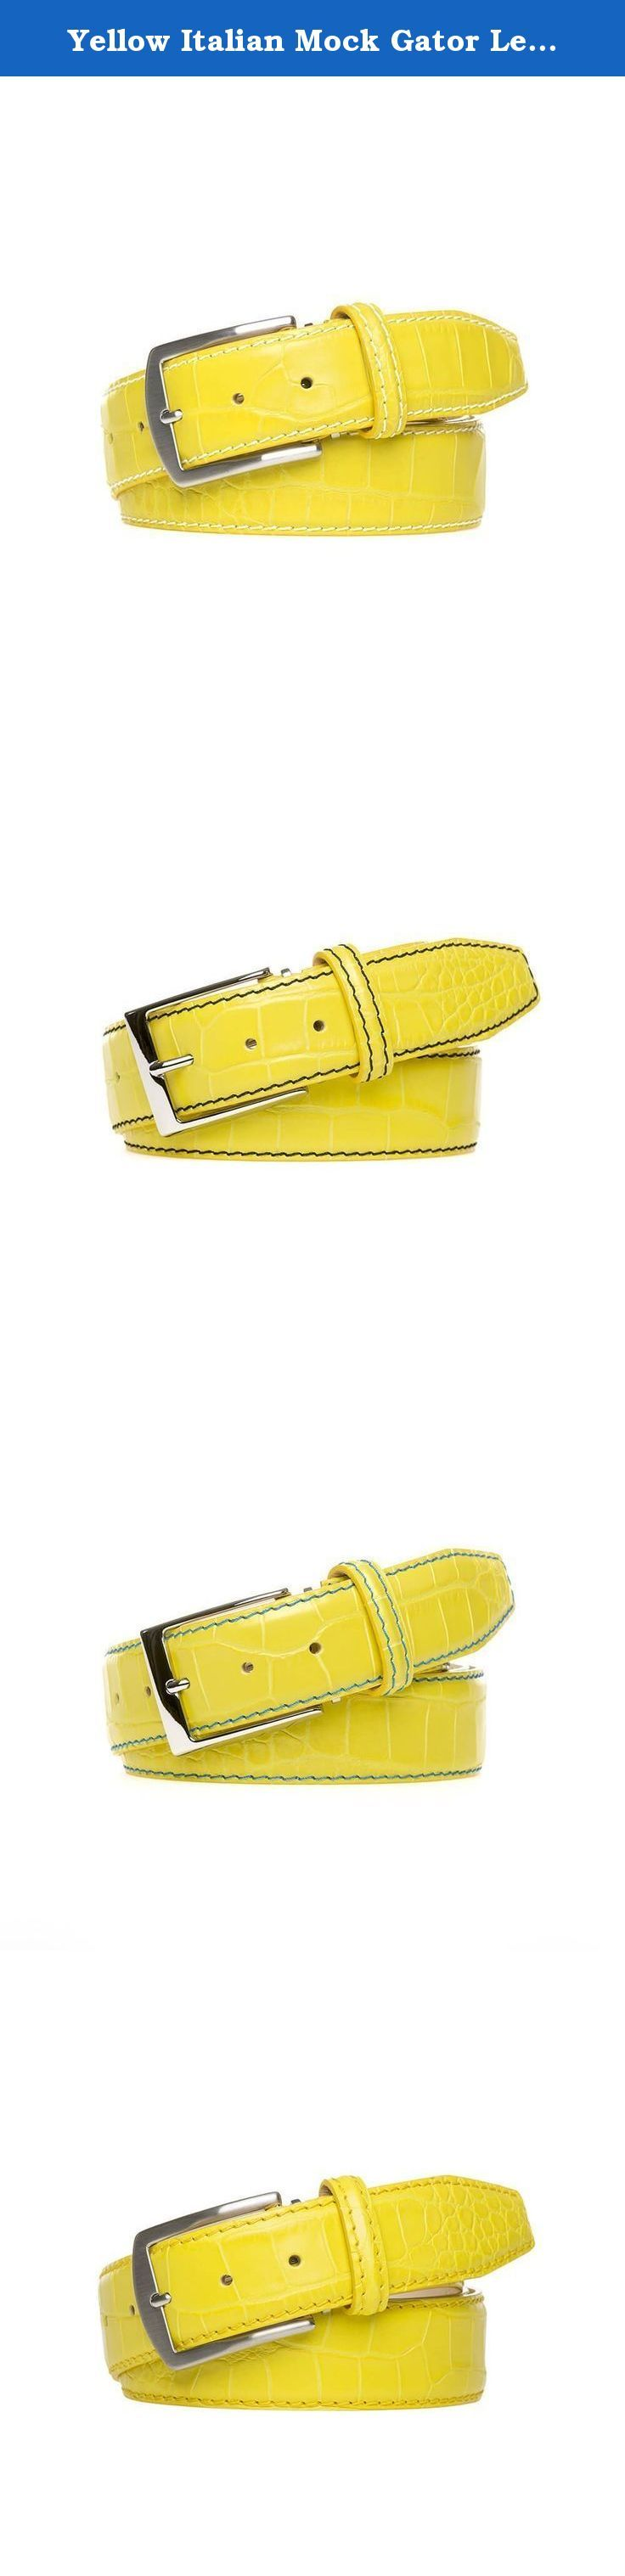 Yellow Italian Mock Gator Leather Belt. Made from 100% Italian Calf Leather and handmade to order. All of our leather products are made in the USA. Each belt is designed with a Nubuck lining and solid brass palladium buckle to ensure extra durability. In addition, each belt comes with a signature travel bag to store your belt in.